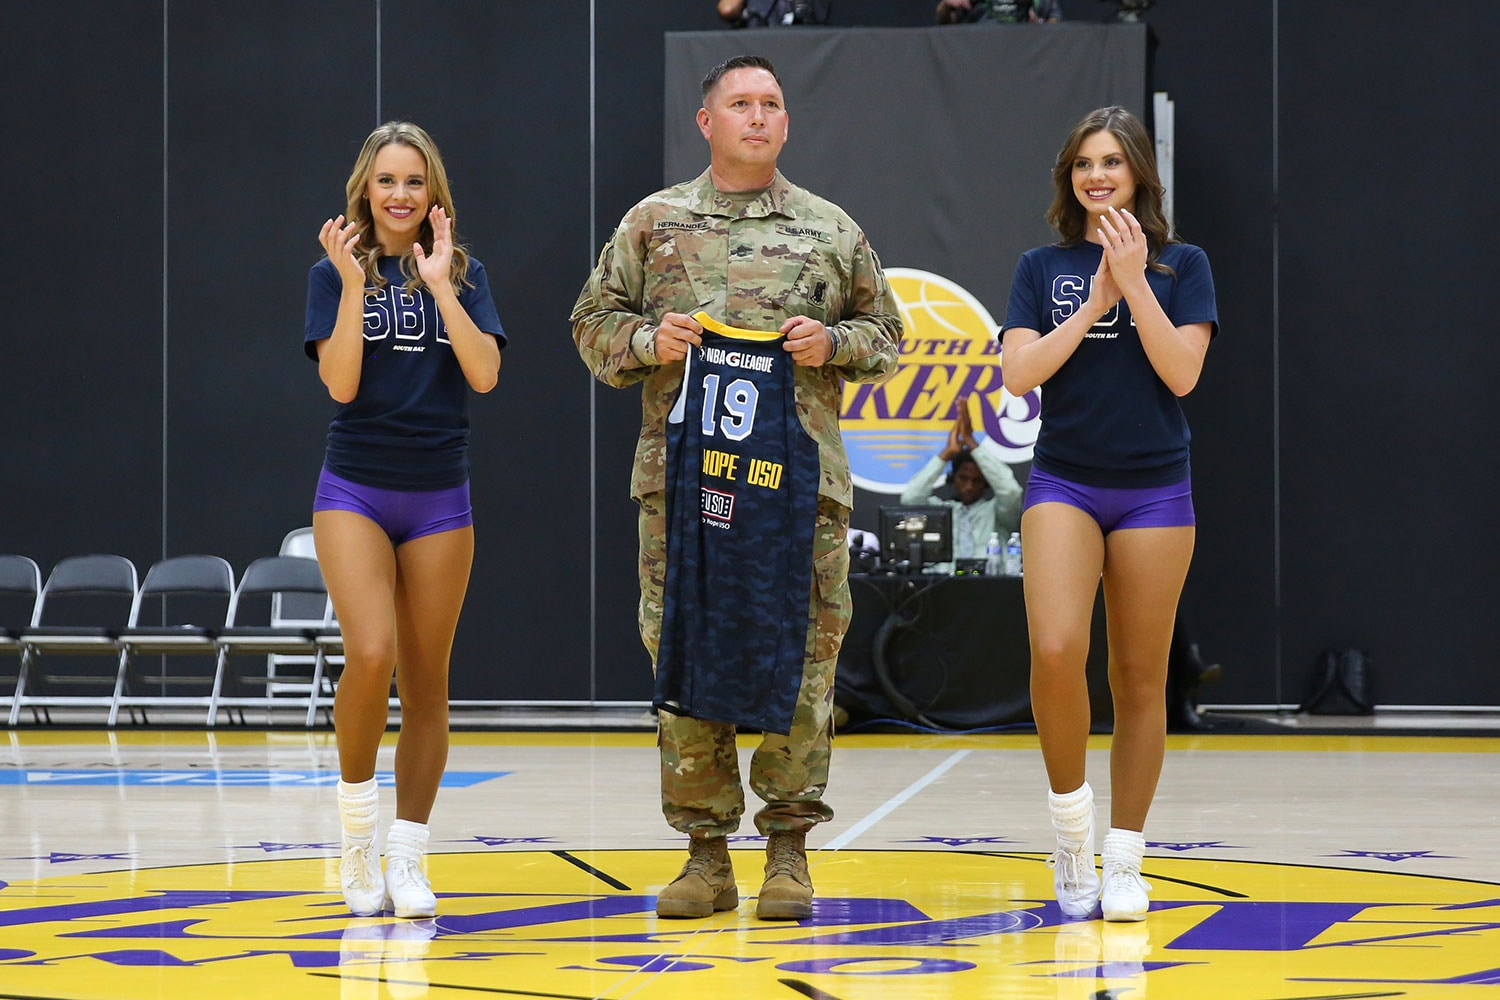 Jersey raffle at South Bay Lakers Military Appreciation Night